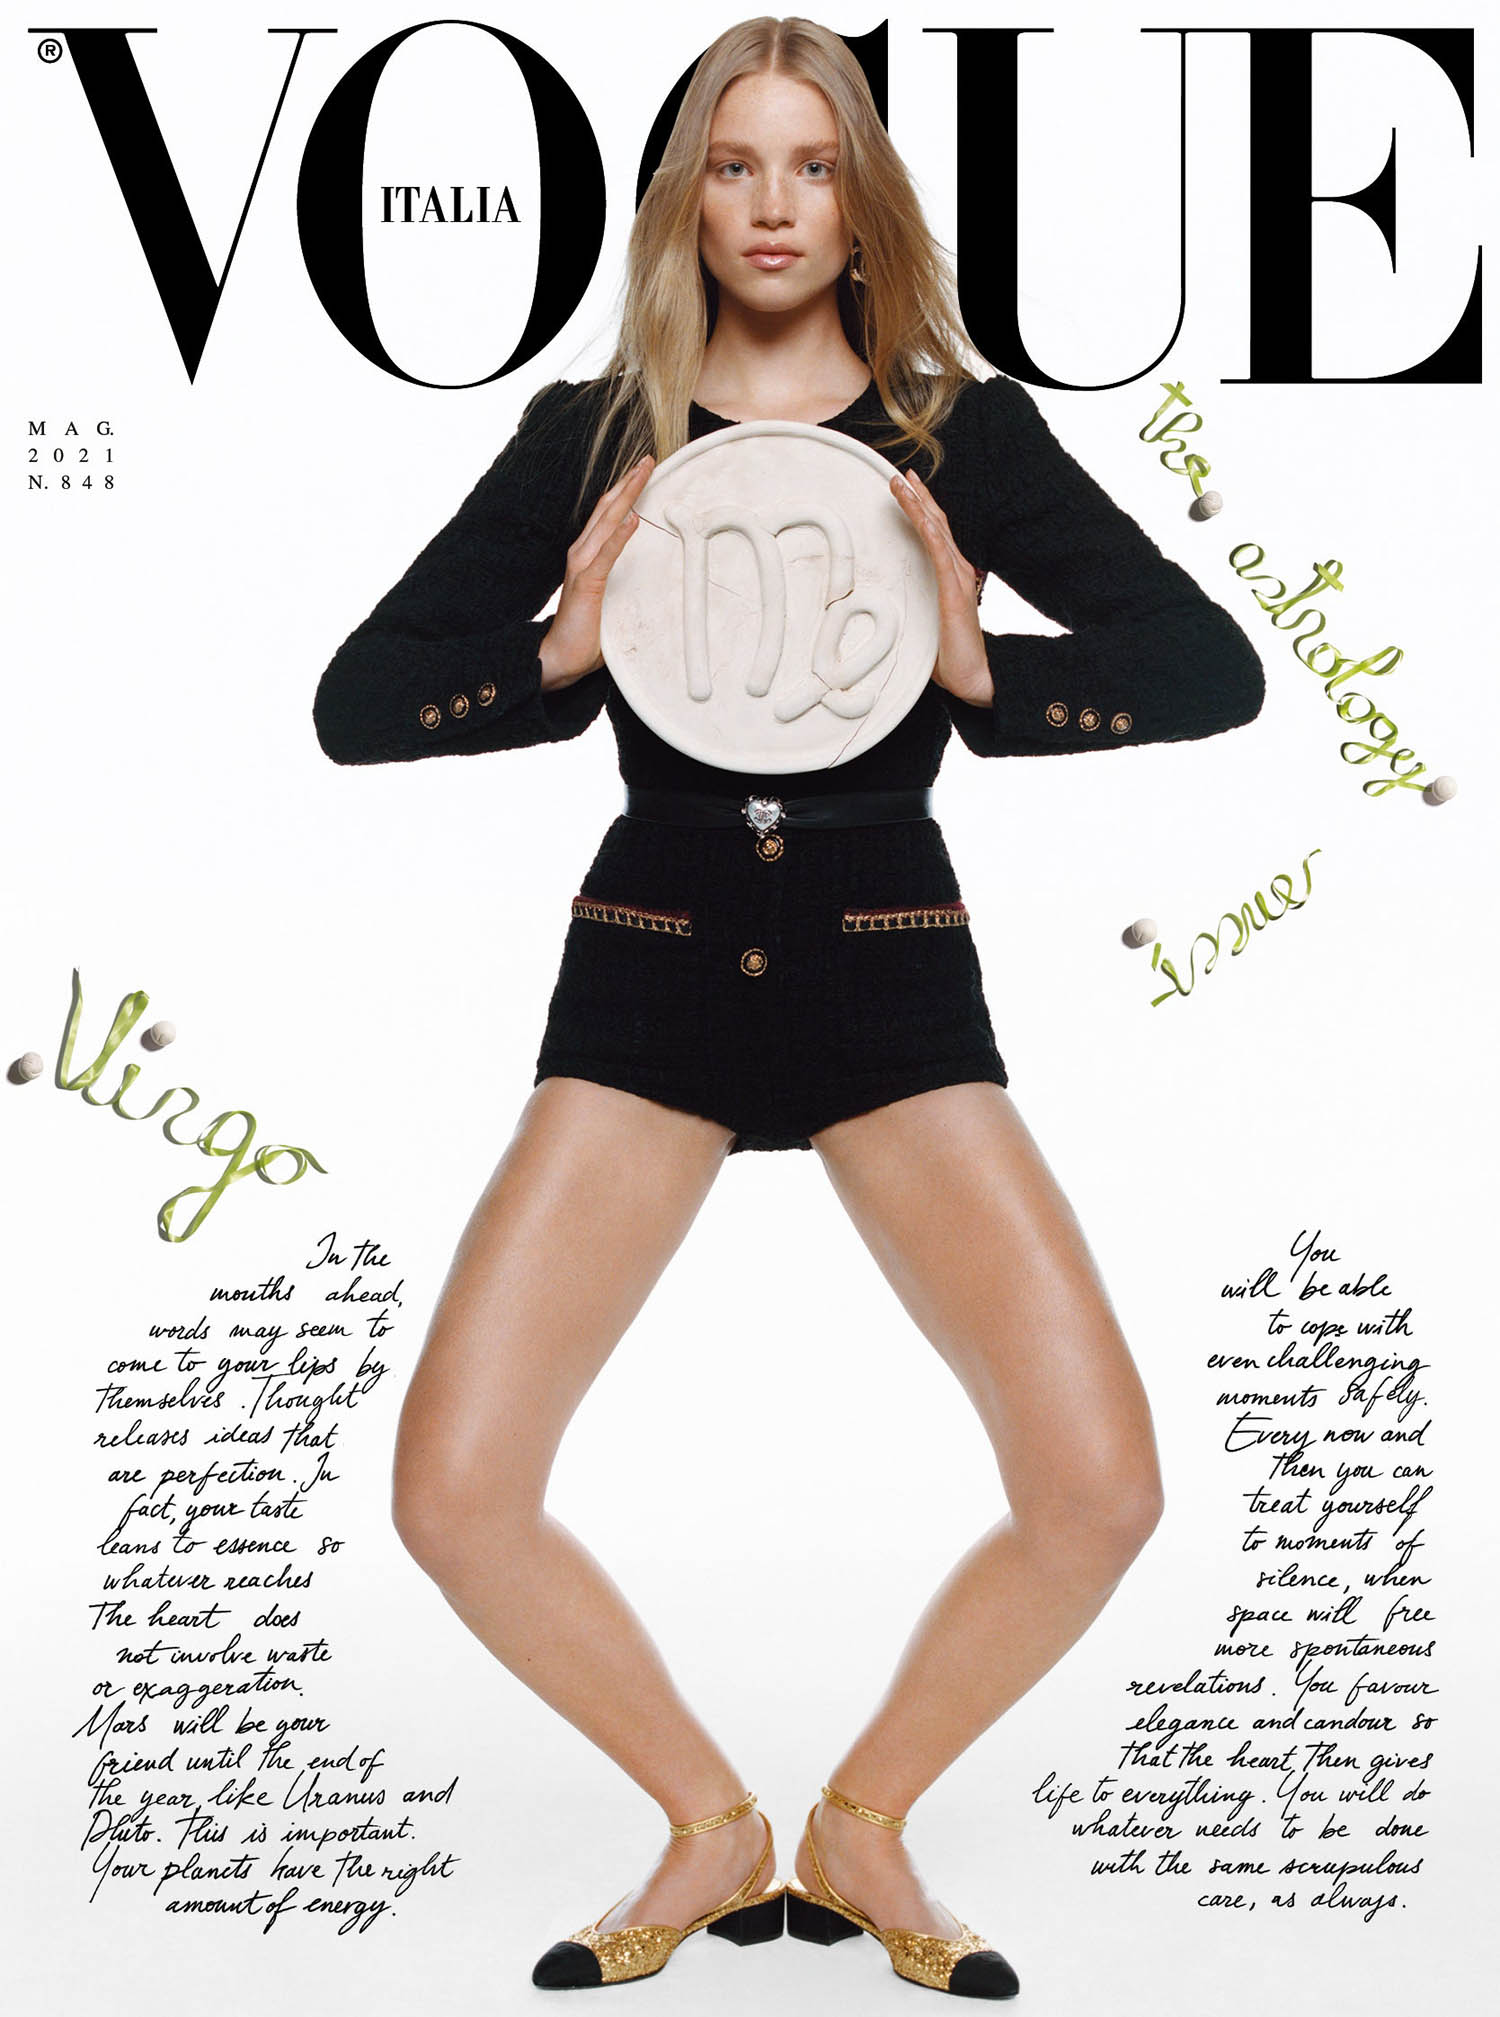 Vogue Italia May 2021 covers by Oliver Hadlee Pearch